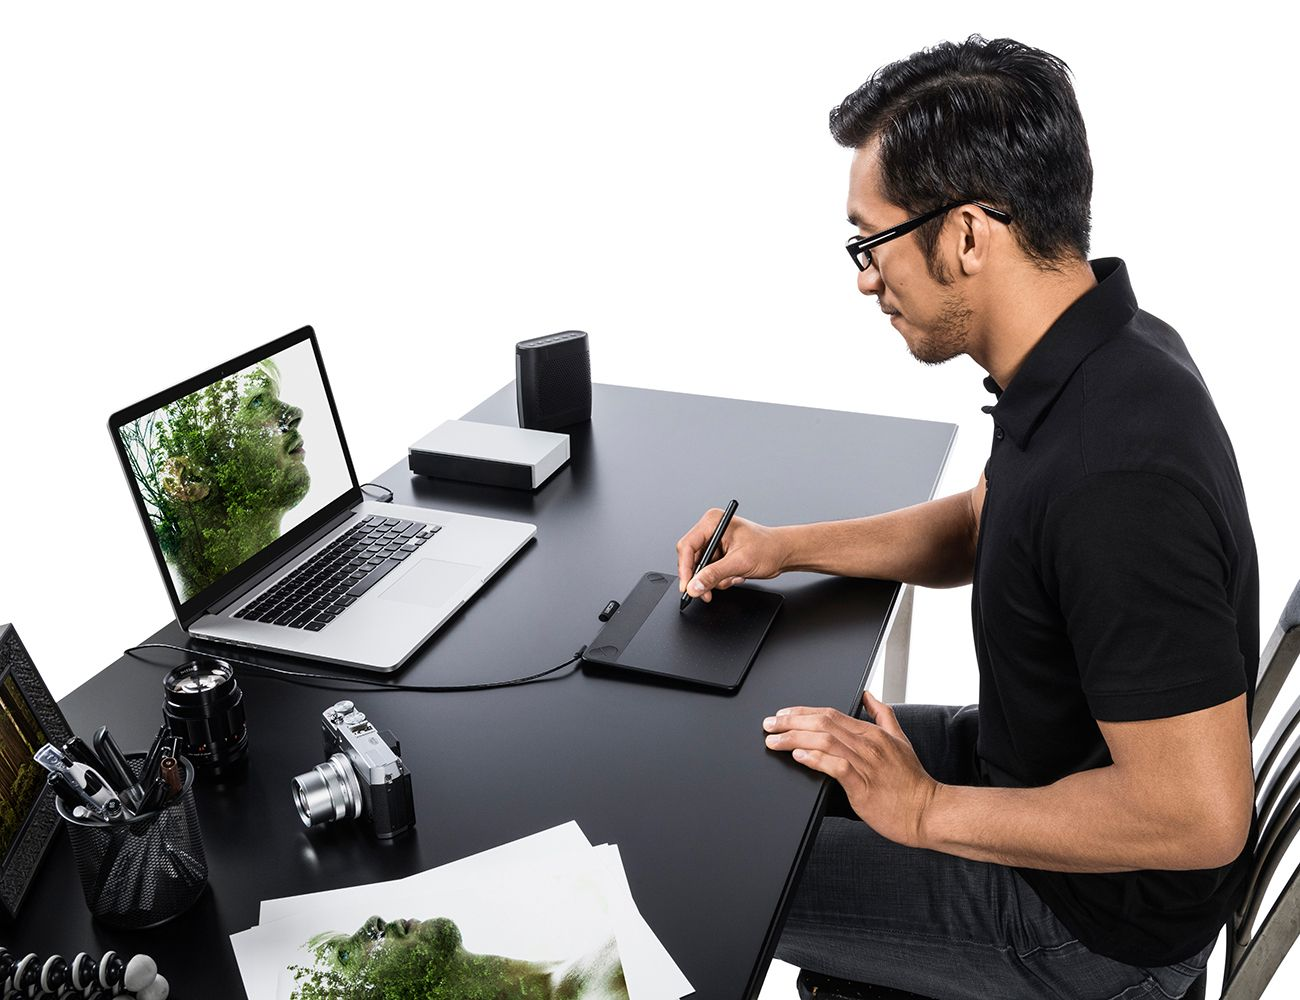 Designed to replace your mouse, the tablet can be used with